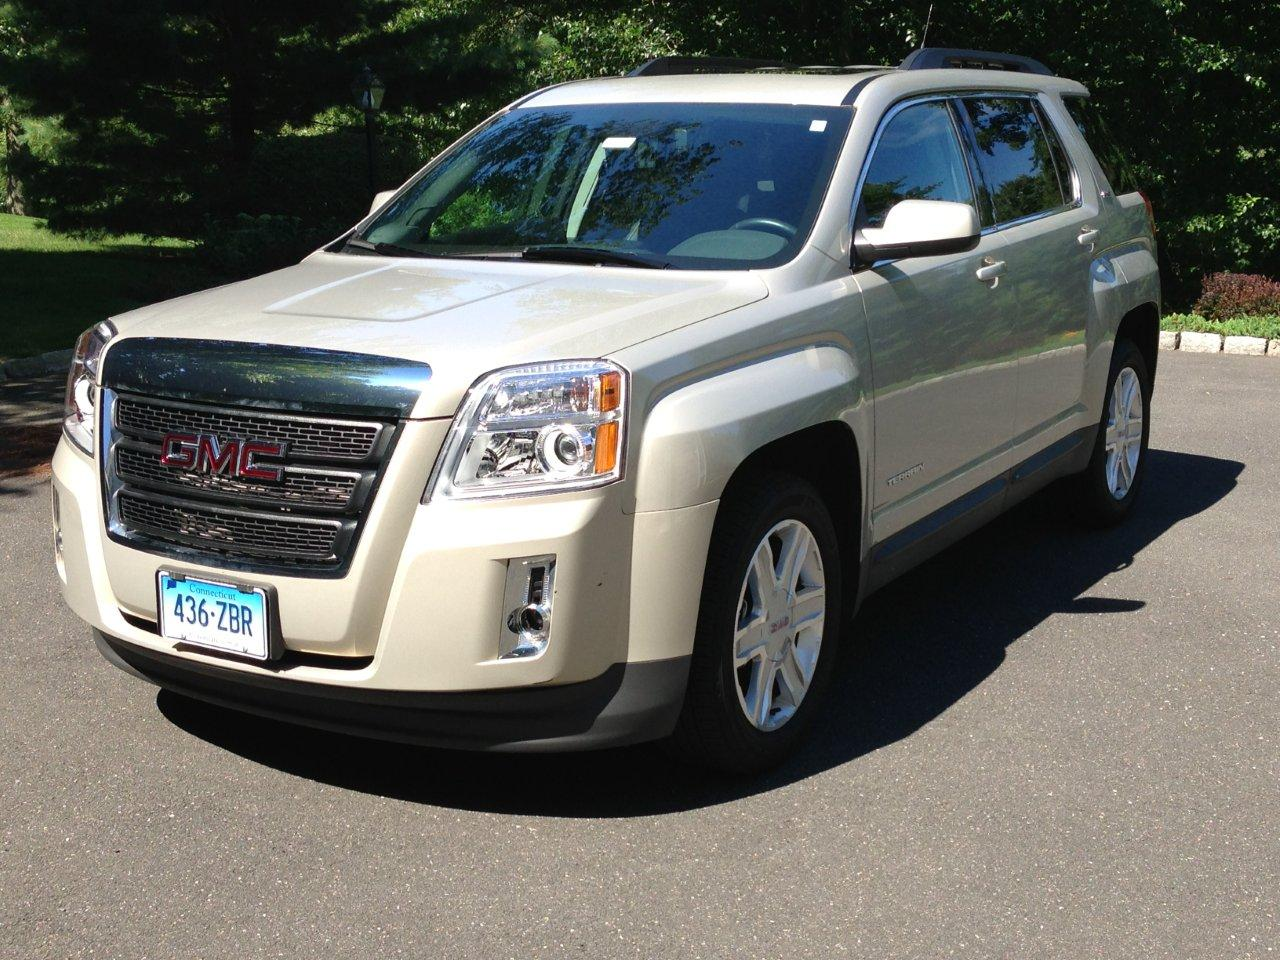 2016 in addition 4097202 moreover 2012 Gmc Terrain Pictures C22912 pi36347533 besides Location Knock Sensor 2 Bank 2 2007 Suburban 48831 furthermore 153363 2014 Leveling Kits. on 08 gmc sierra all terrain